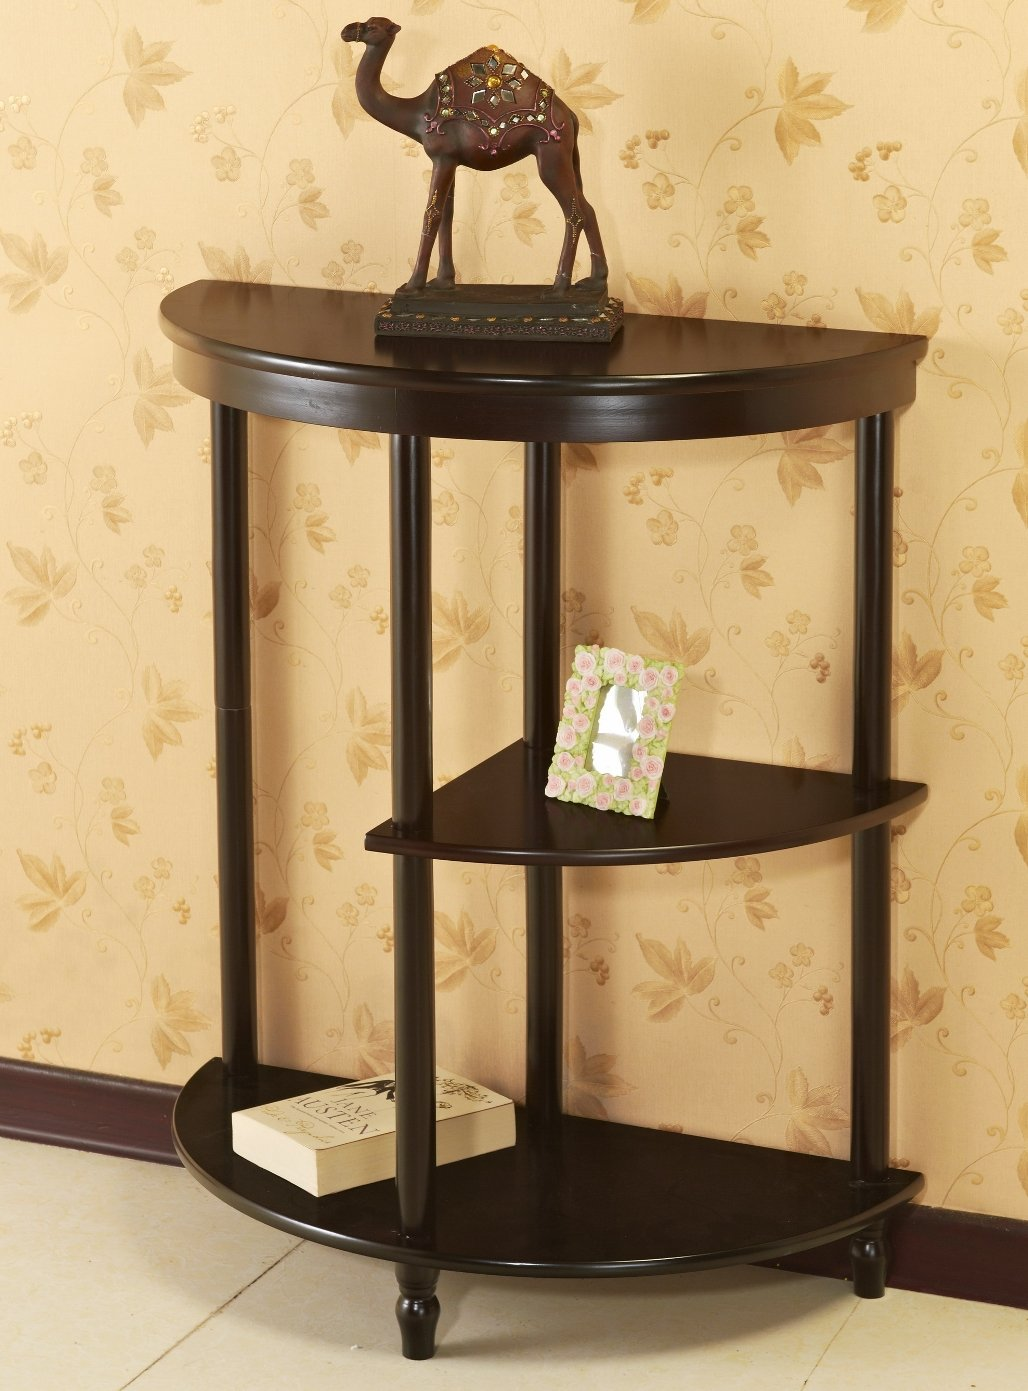 Superb Amazon.com: Frenchi Furniture Cherry 3 Tier Crescent ,Half Moon ,Hall /  Console Table/End Table: Kitchen U0026 Dining